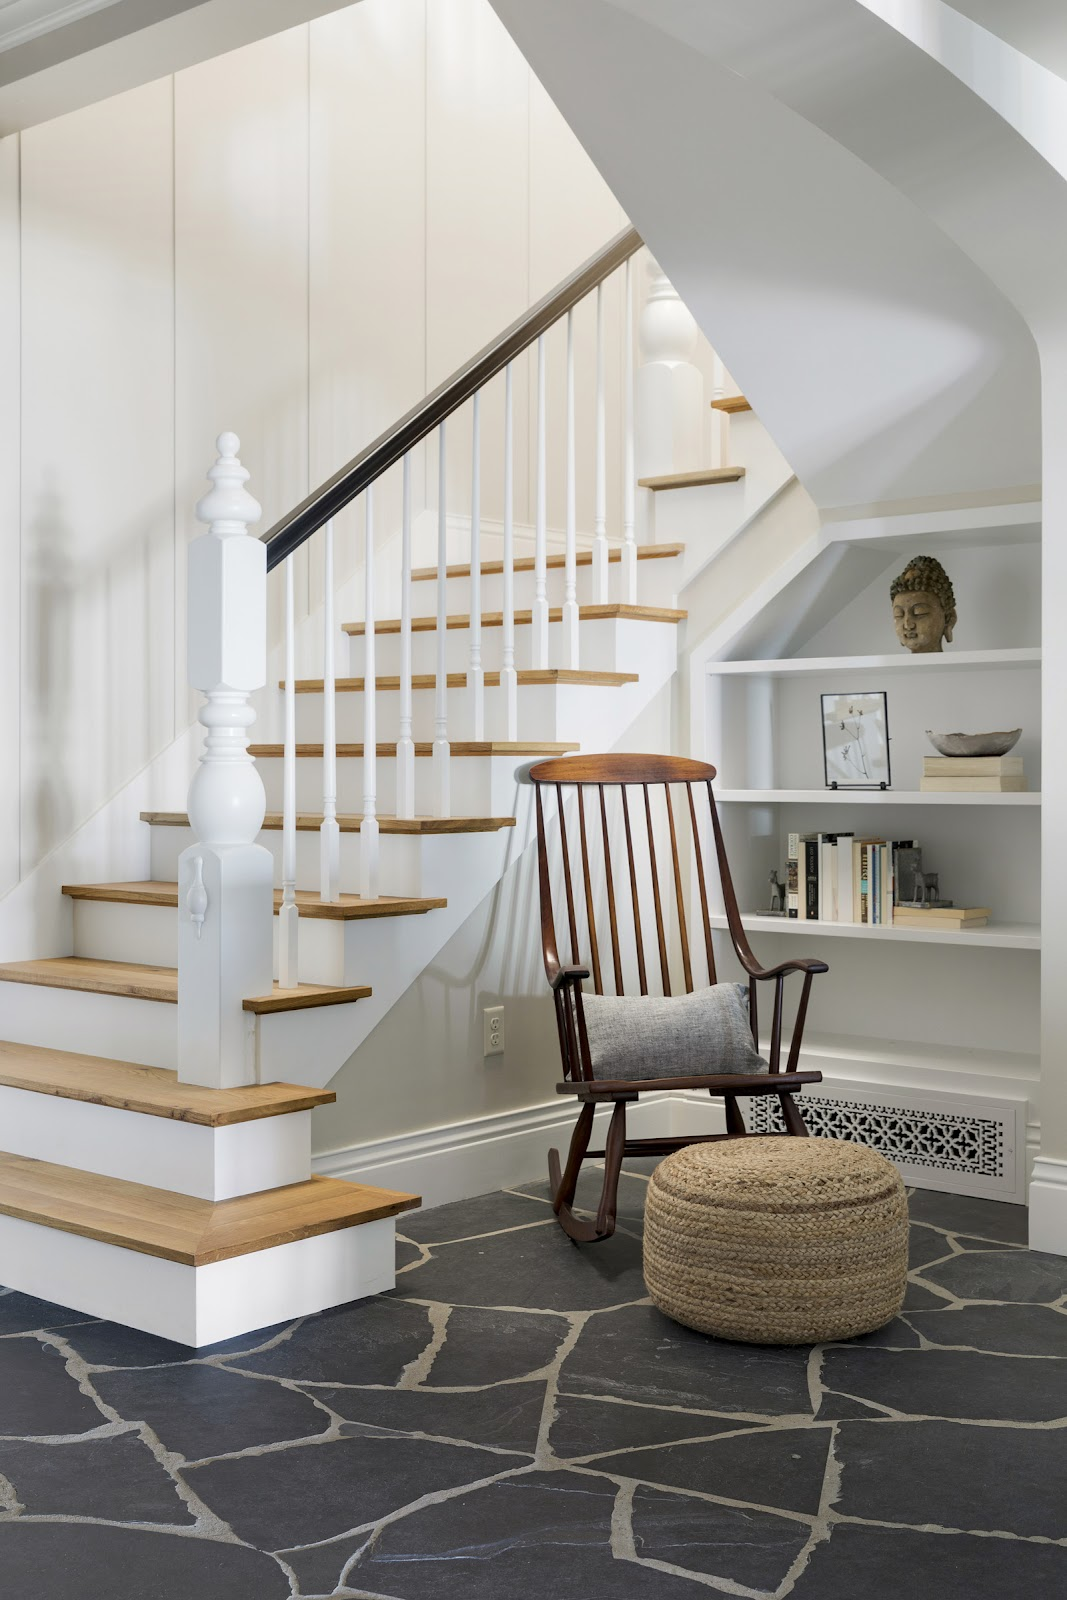 White stairwell with an antique eco-friendly wooden rocking chair.